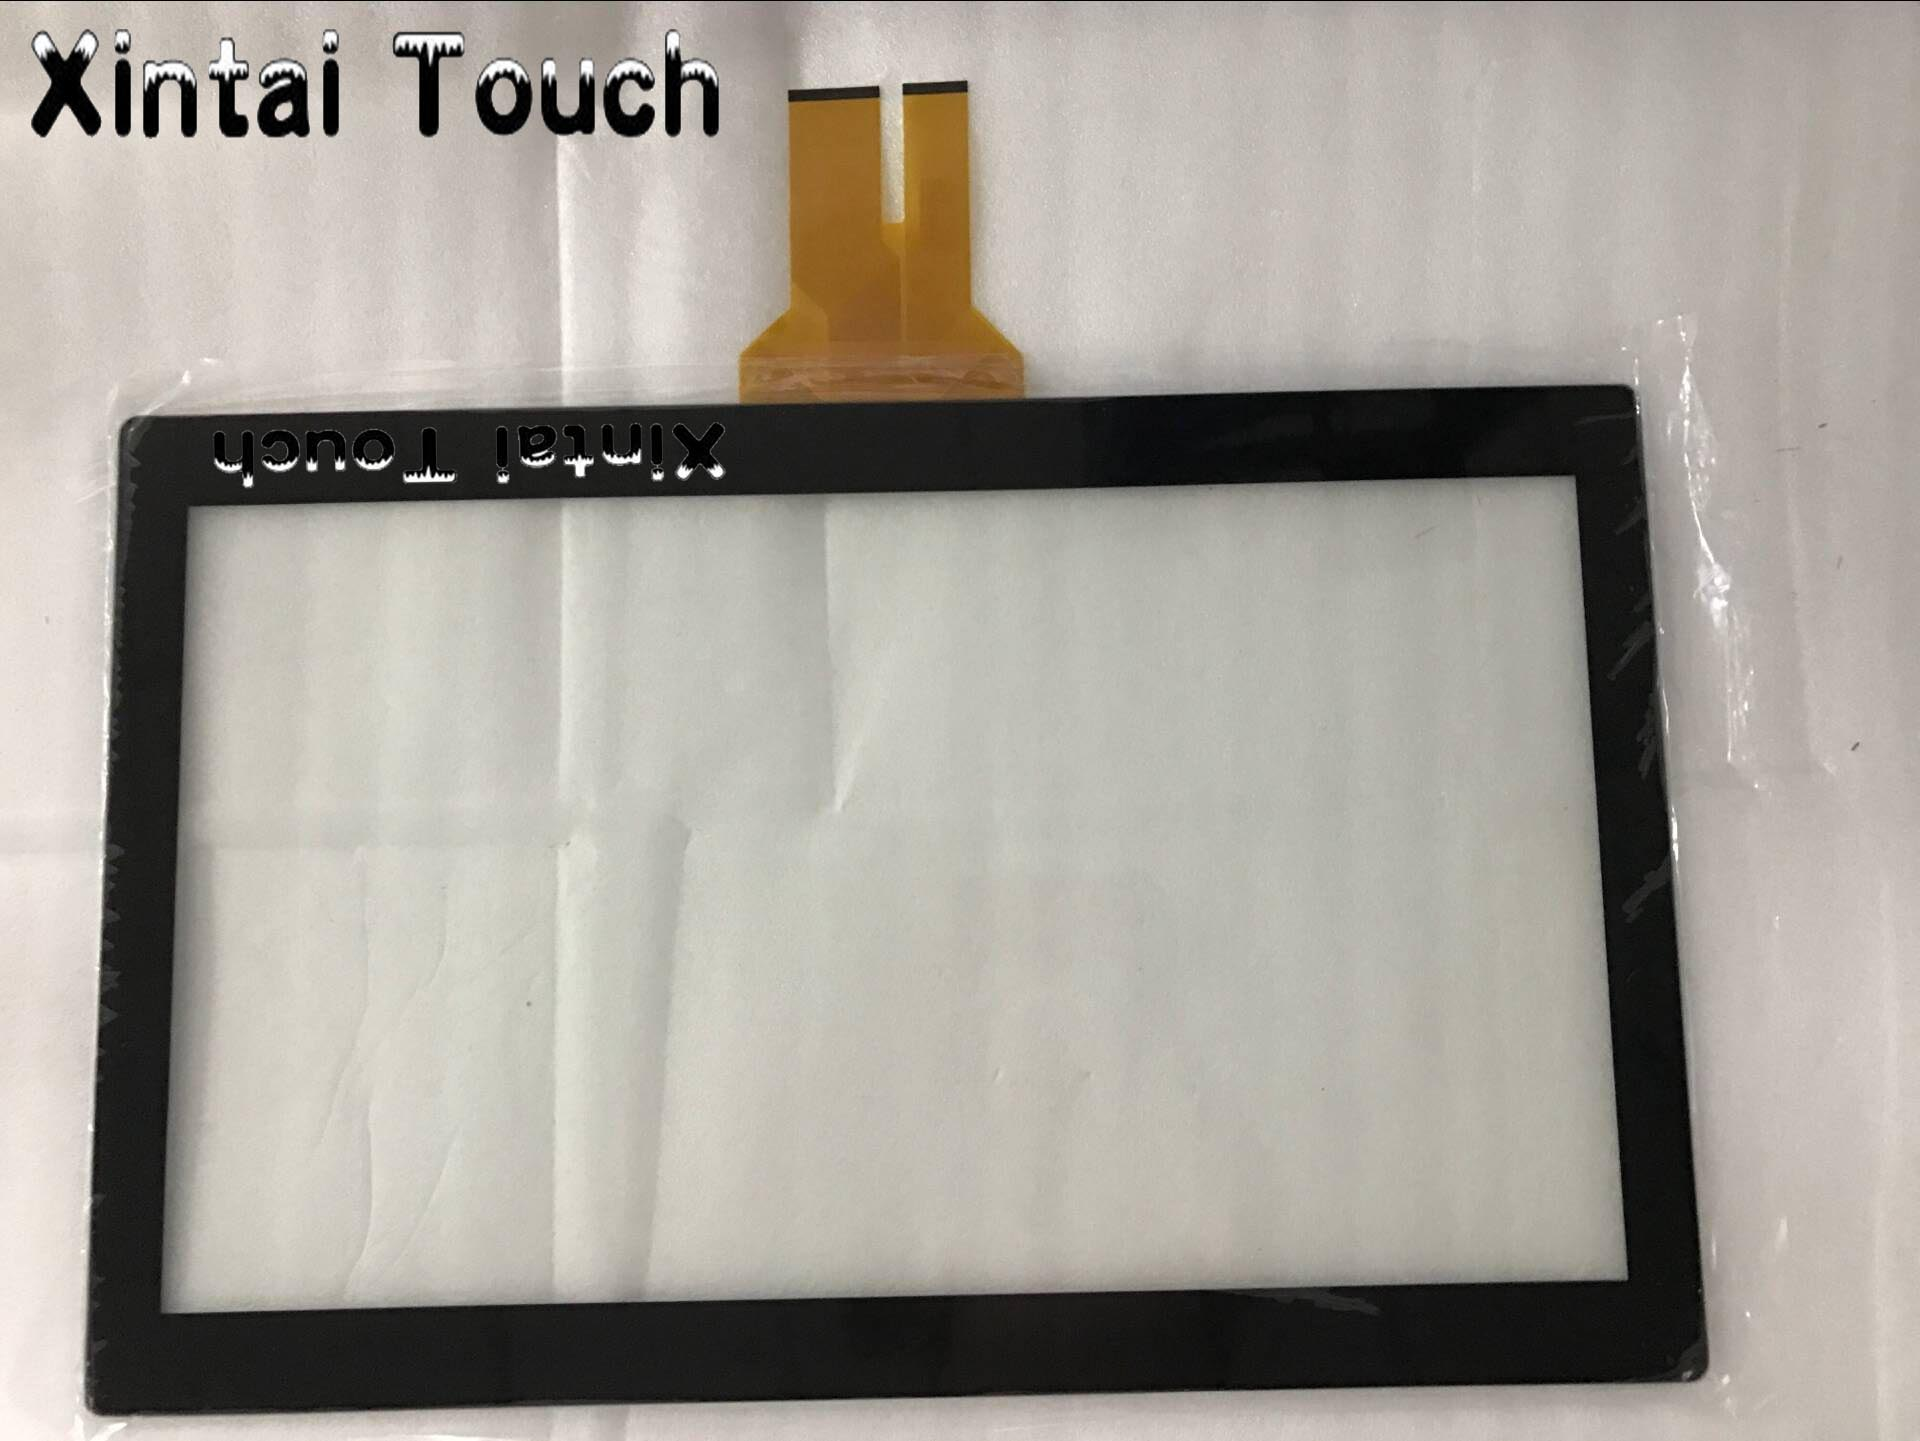 2016 Hot selling 15 Inch 10 points Capacitive Multi Touch Screen Overlay Panel Kit for Industrial Monitor with EETI controller 32 inch high definition 2 points multi touch screen panel ir multi touch screen overlay for touch table kiosk etc